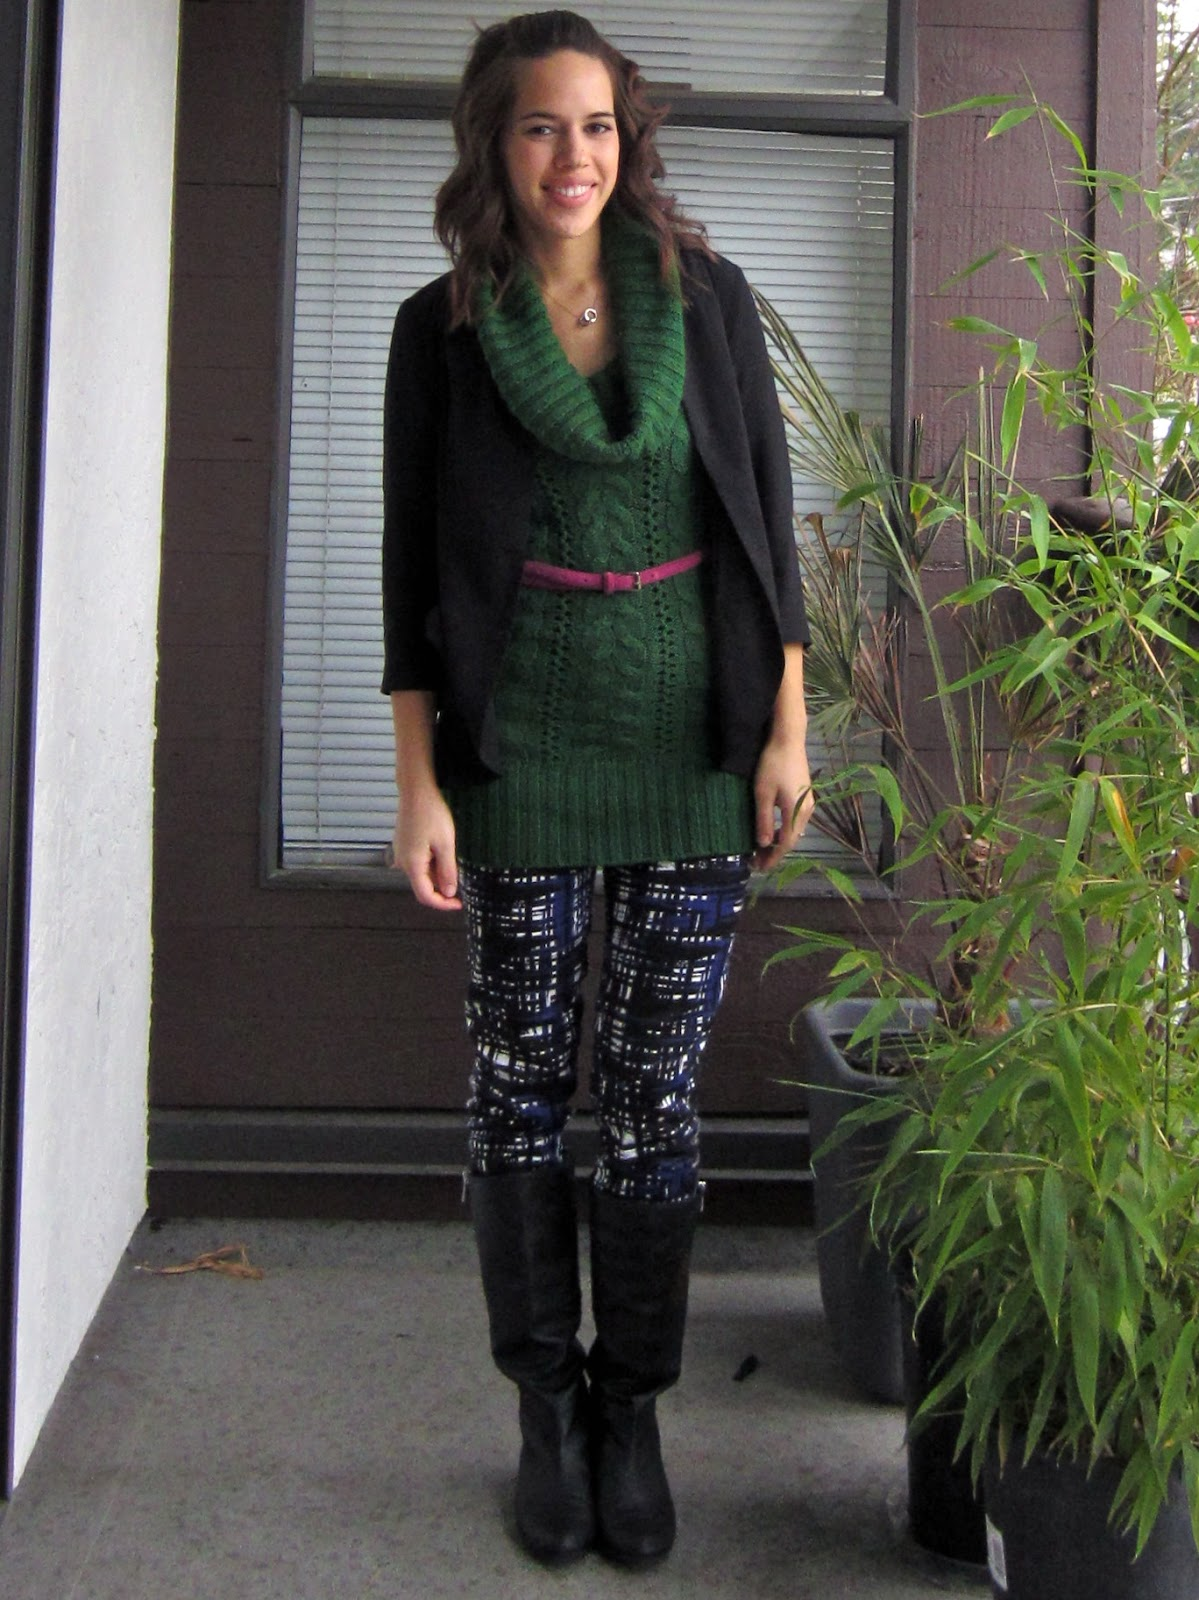 jules in flats: Green Cowl Neck Sweater & Patterned Pants